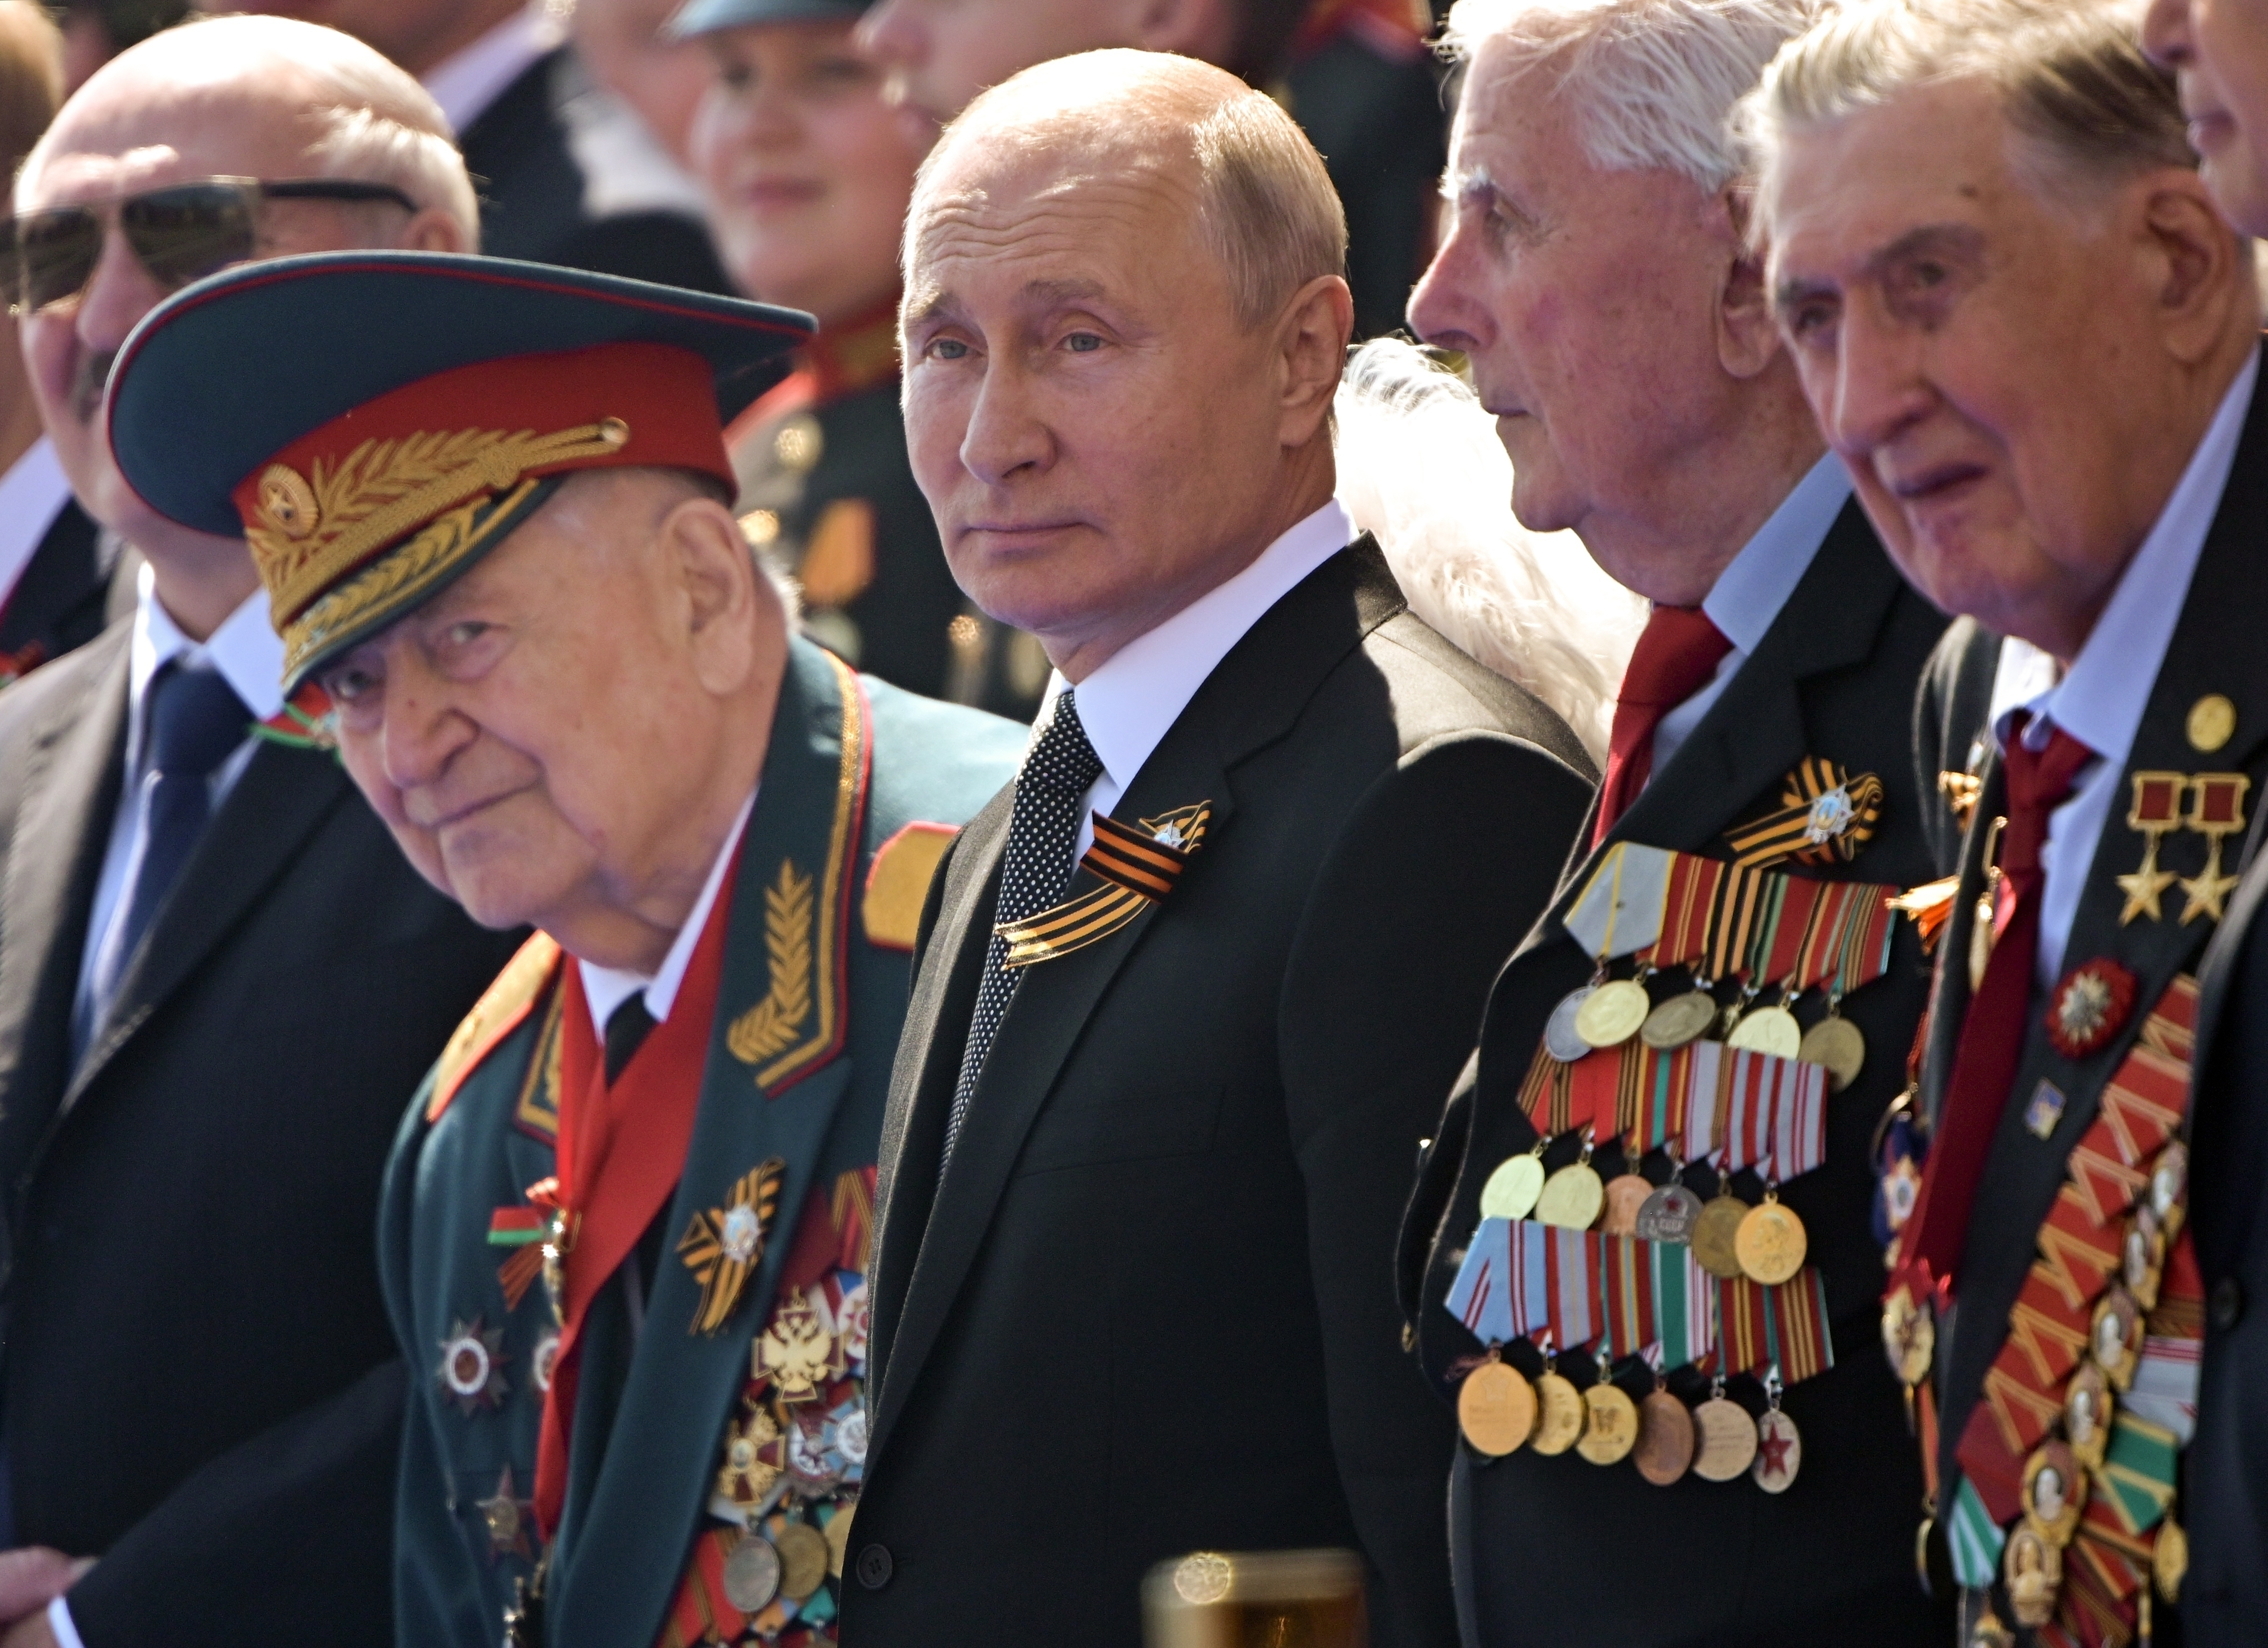 In this file photo taken on Wednesday, June 24, 2020, Russian President Vladimir Putin, center, watches the Victory Day military parade marking the 75th anniversary of the Nazi defeat in Moscow. Russian authorities seem to be pulling out all the stops to get people to vote on a series of constitutional amendments that would enable President Vladimir Putin to stay in office until 2036 by resetting the clock on his term limits.